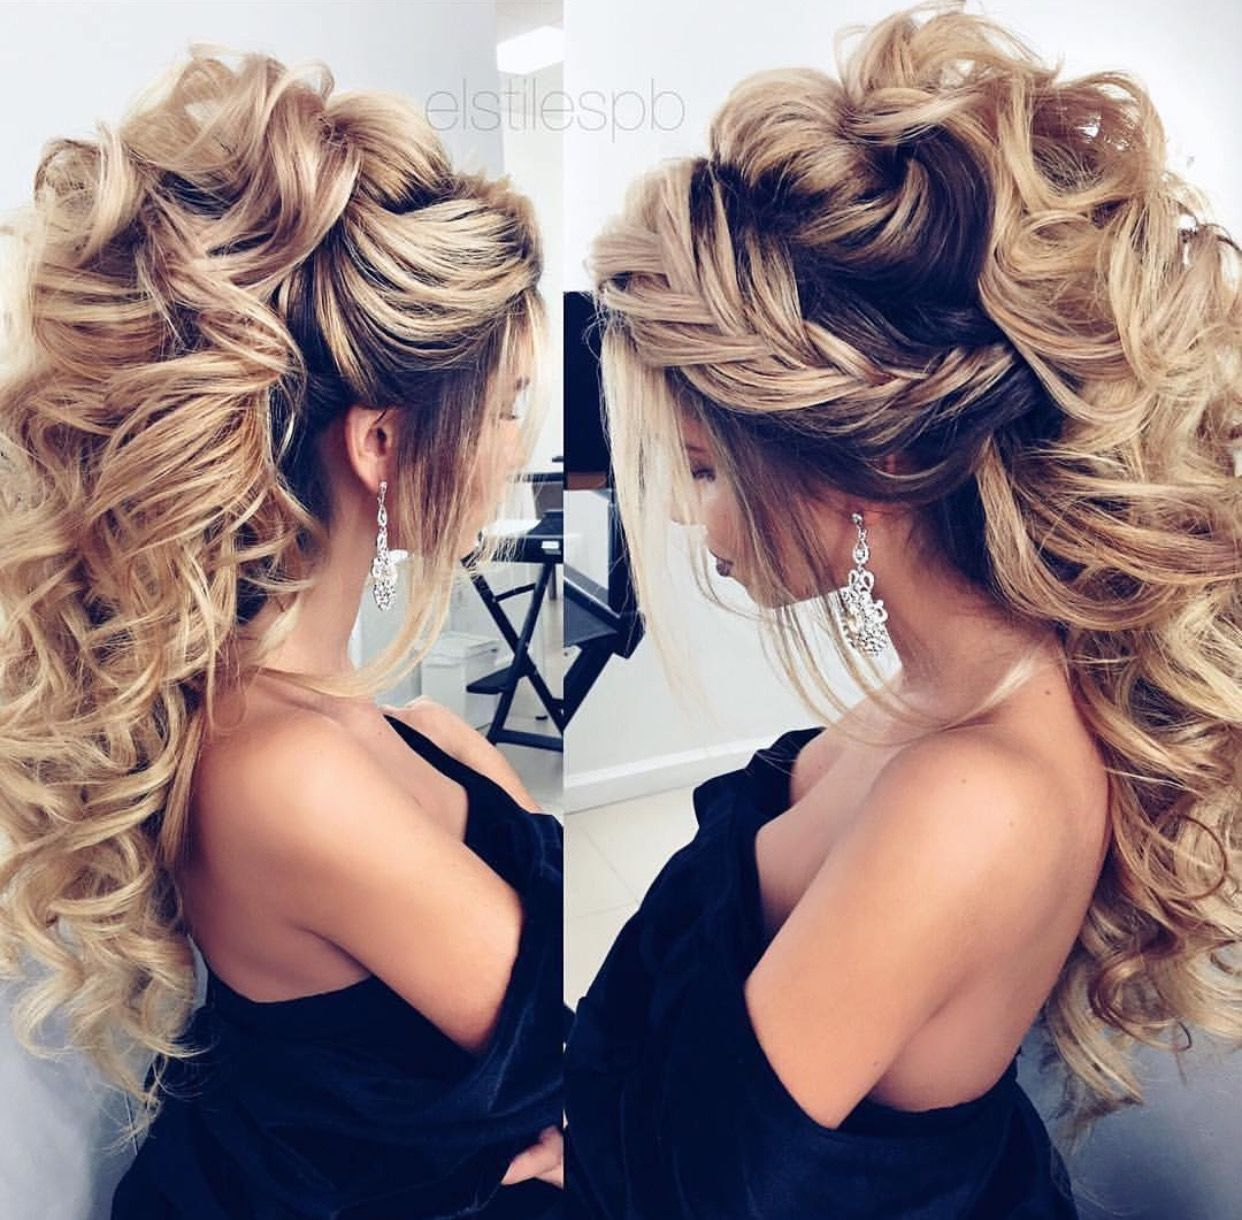 Pin by jordyn mccart on prom pinterest hair style prom and prom